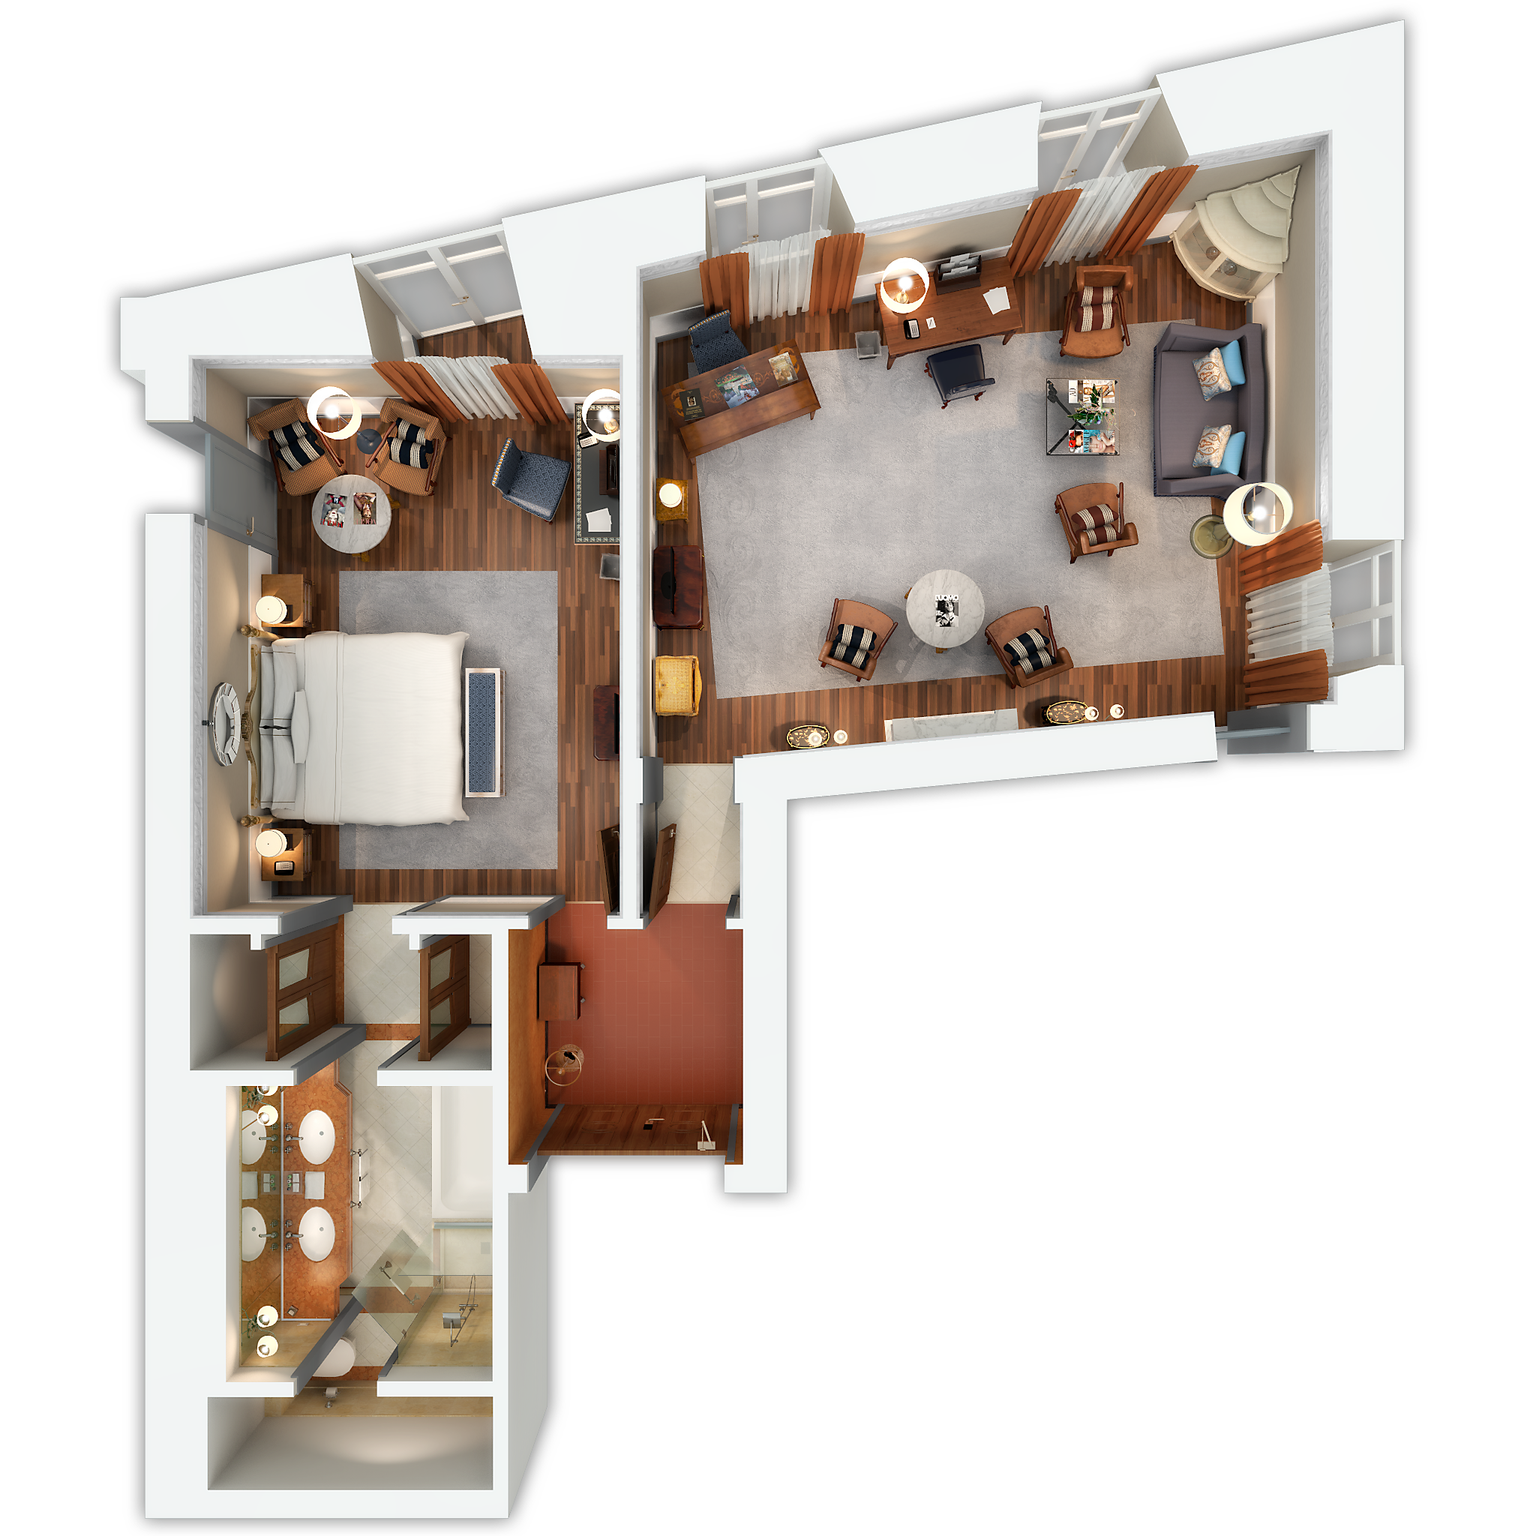 Grand Deluxe Suite floor plan